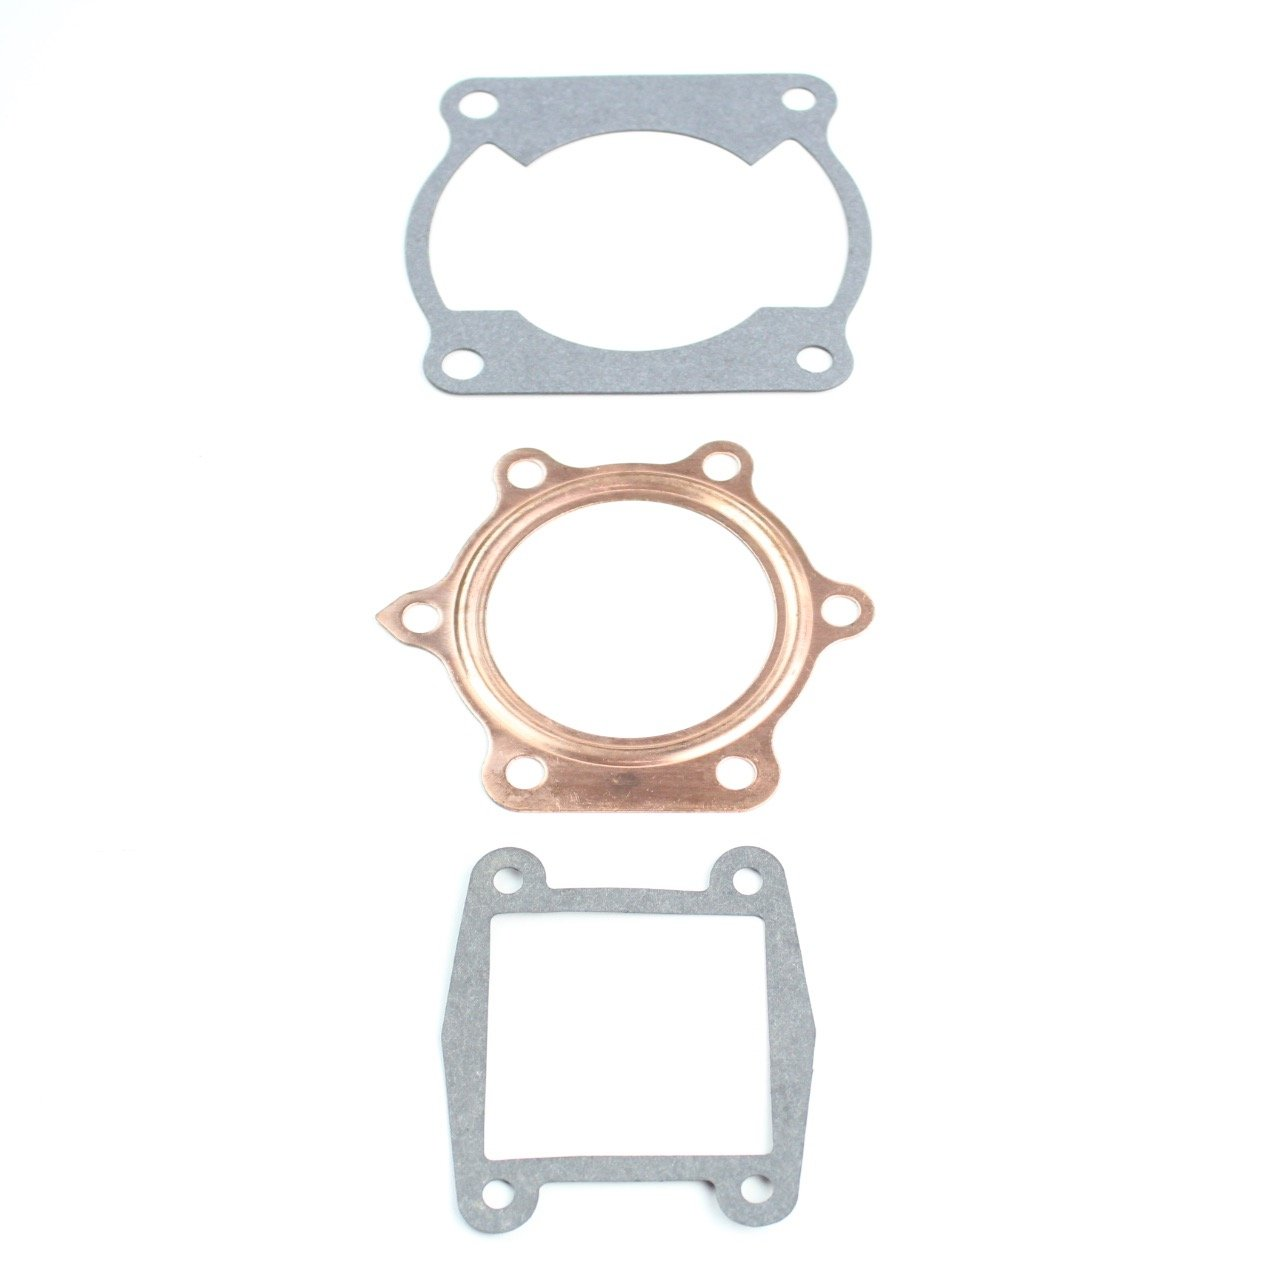 NICHE Cylinder Piston Gasket Top End Kit for Yamaha Blaster 200 YFS200 1988-2006